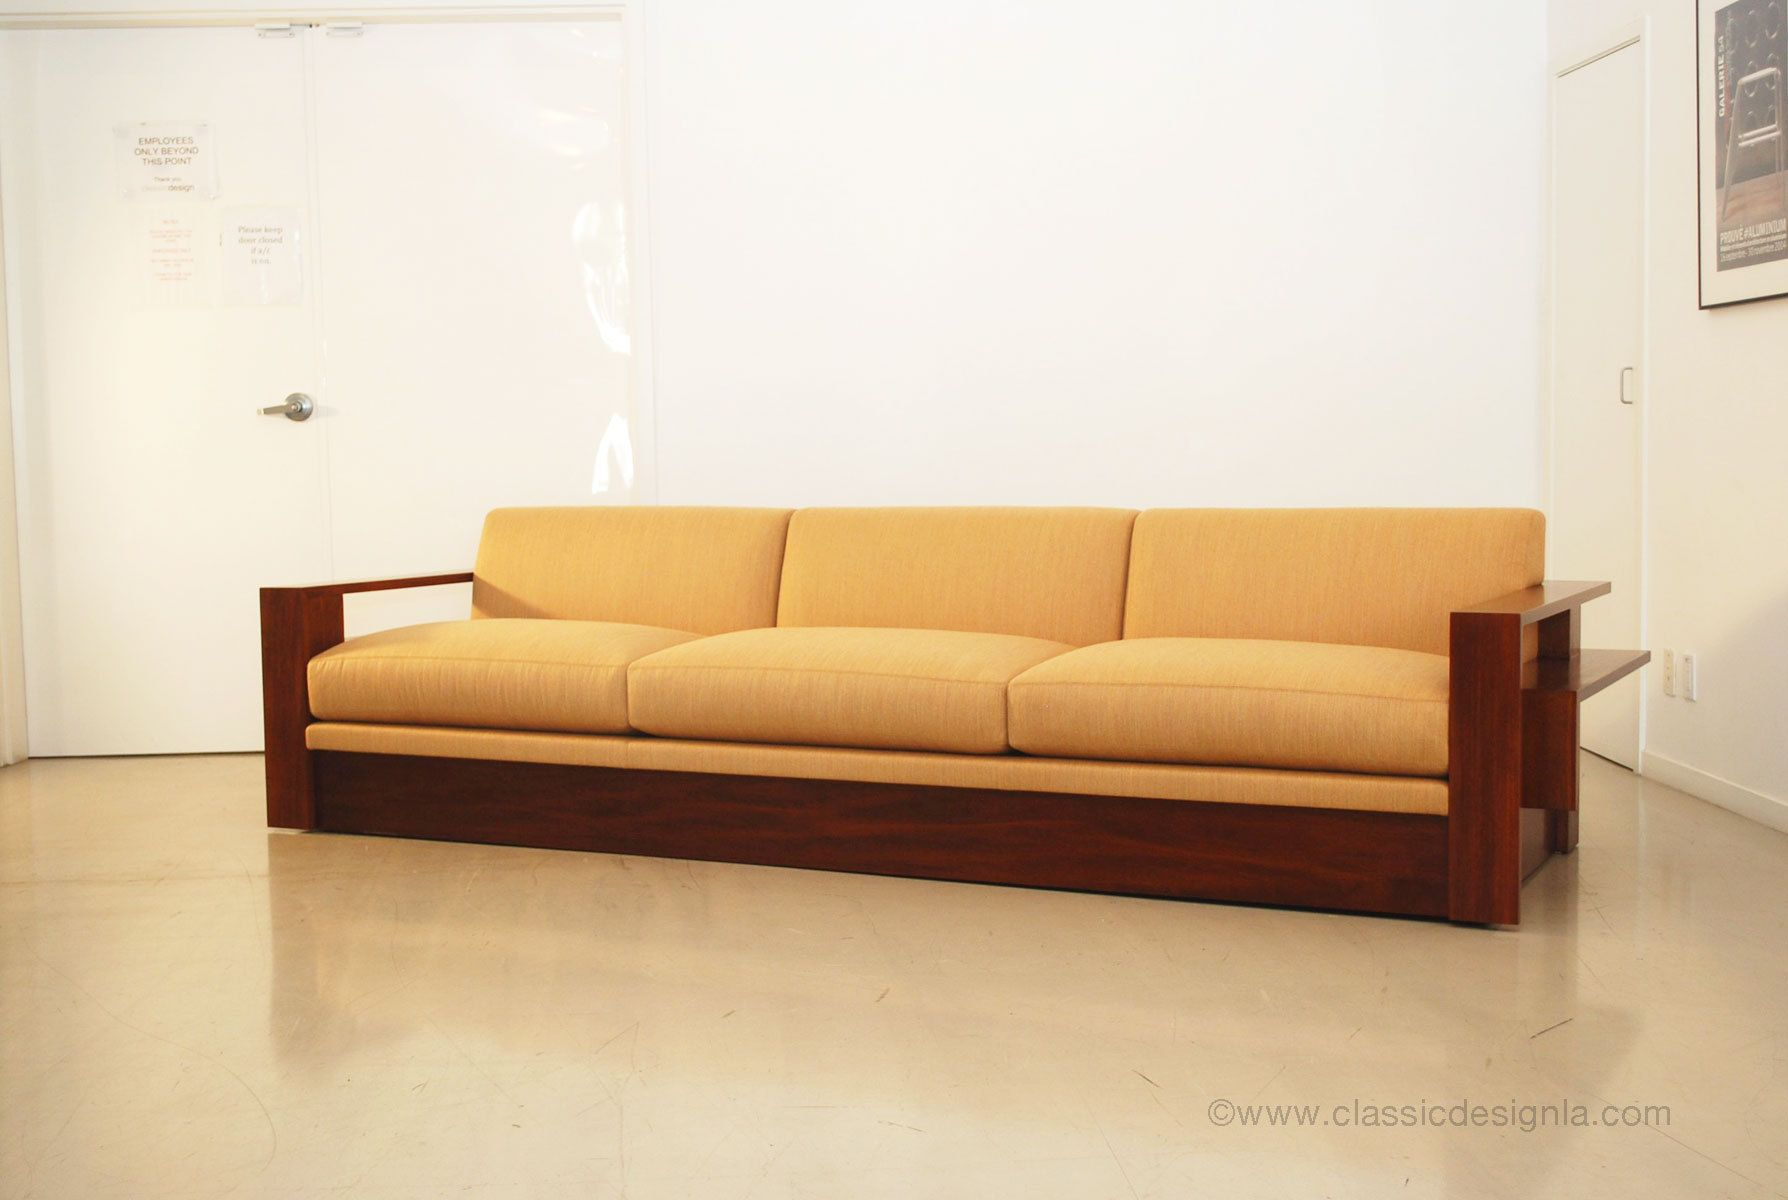 Custom wood frame sofa google search wood frame sofas Sofa design ideas photos